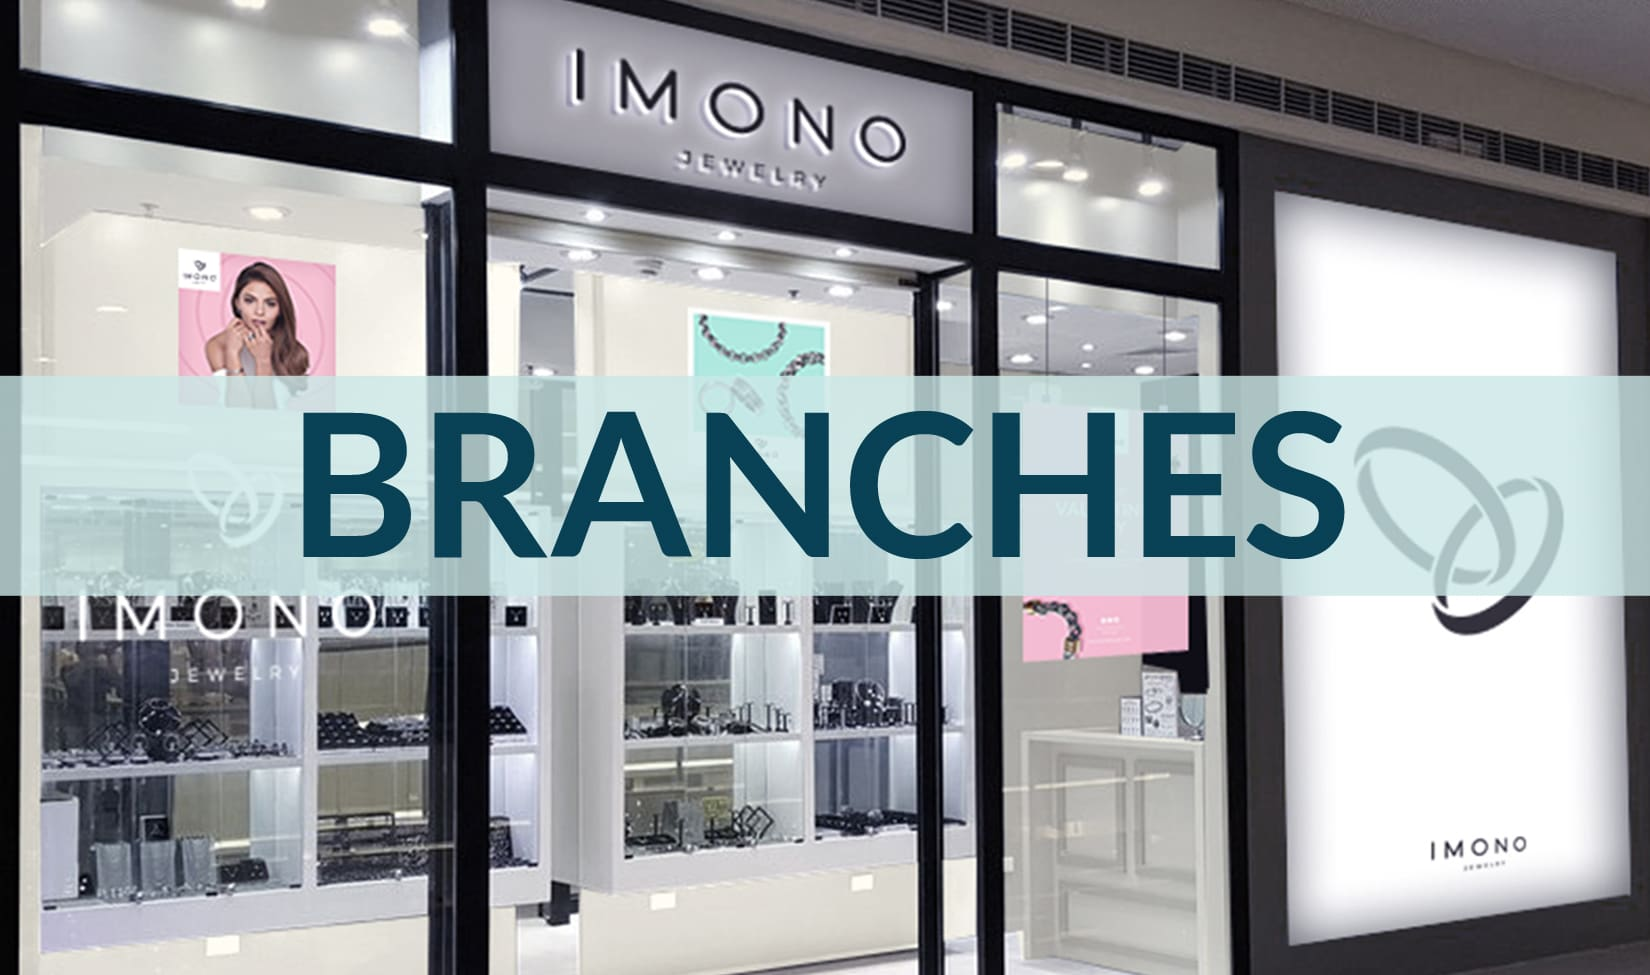 Branches - Imono Steel Jewelry Philippines